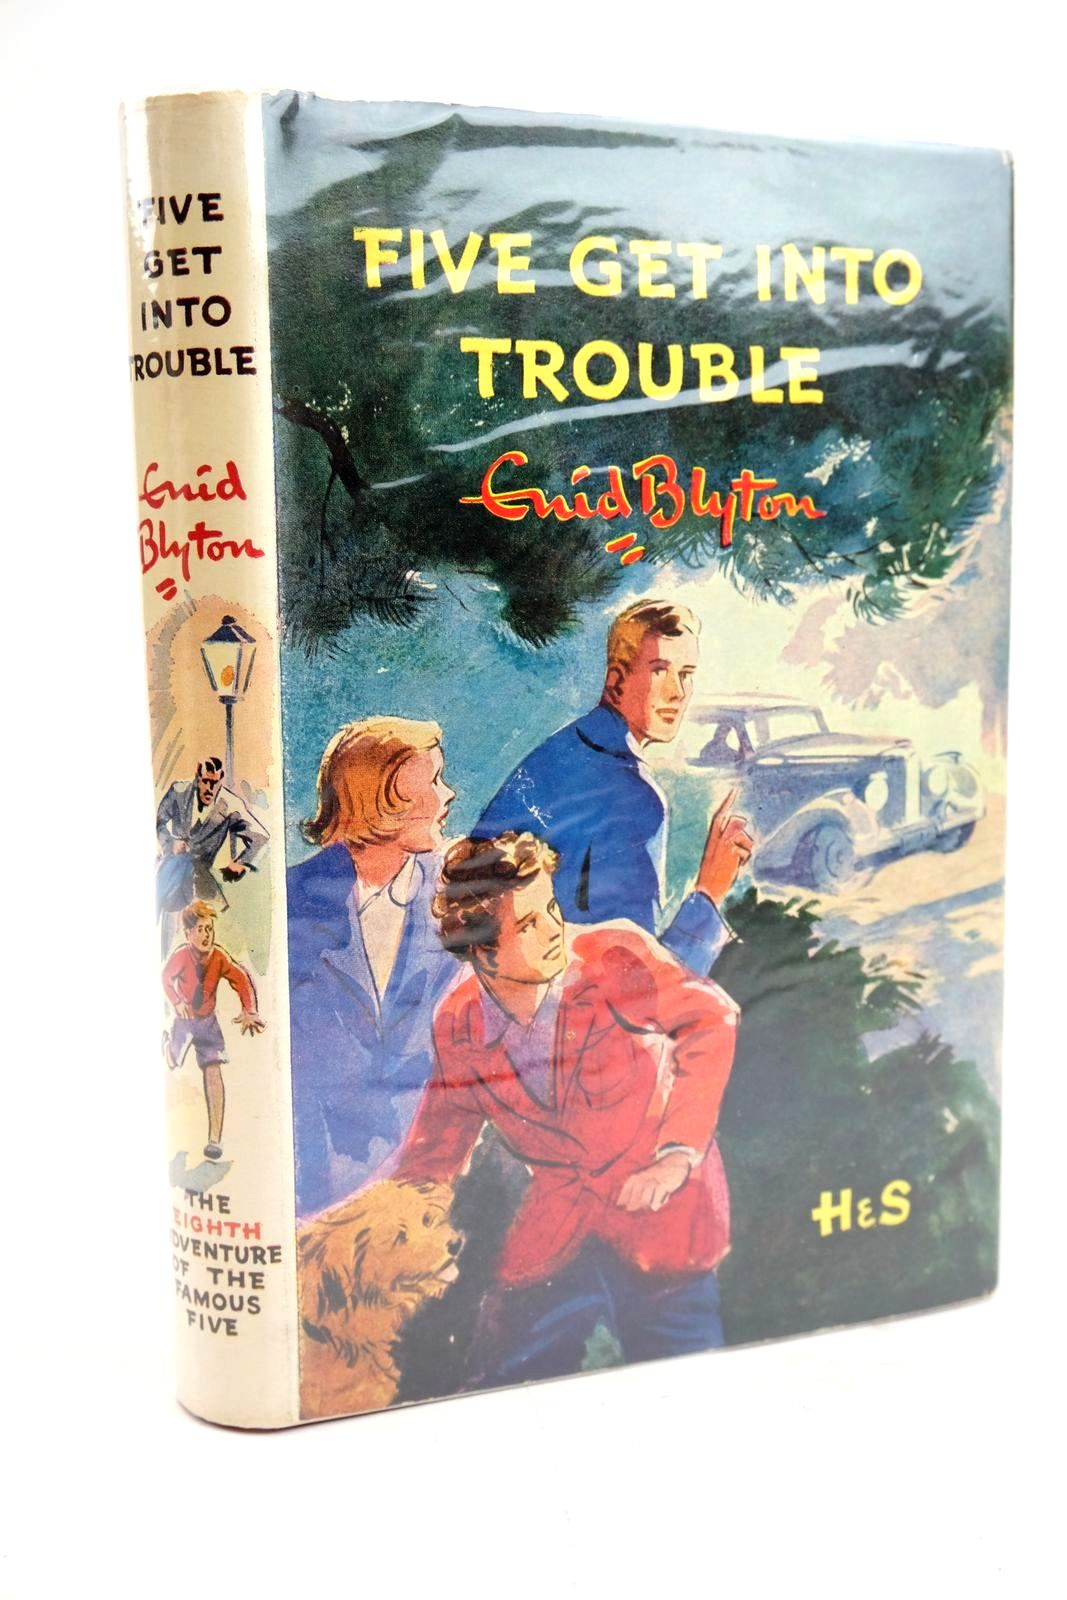 Photo of FIVE GET INTO TROUBLE written by Blyton, Enid illustrated by Soper, Eileen published by Hodder & Stoughton (STOCK CODE: 1319573)  for sale by Stella & Rose's Books